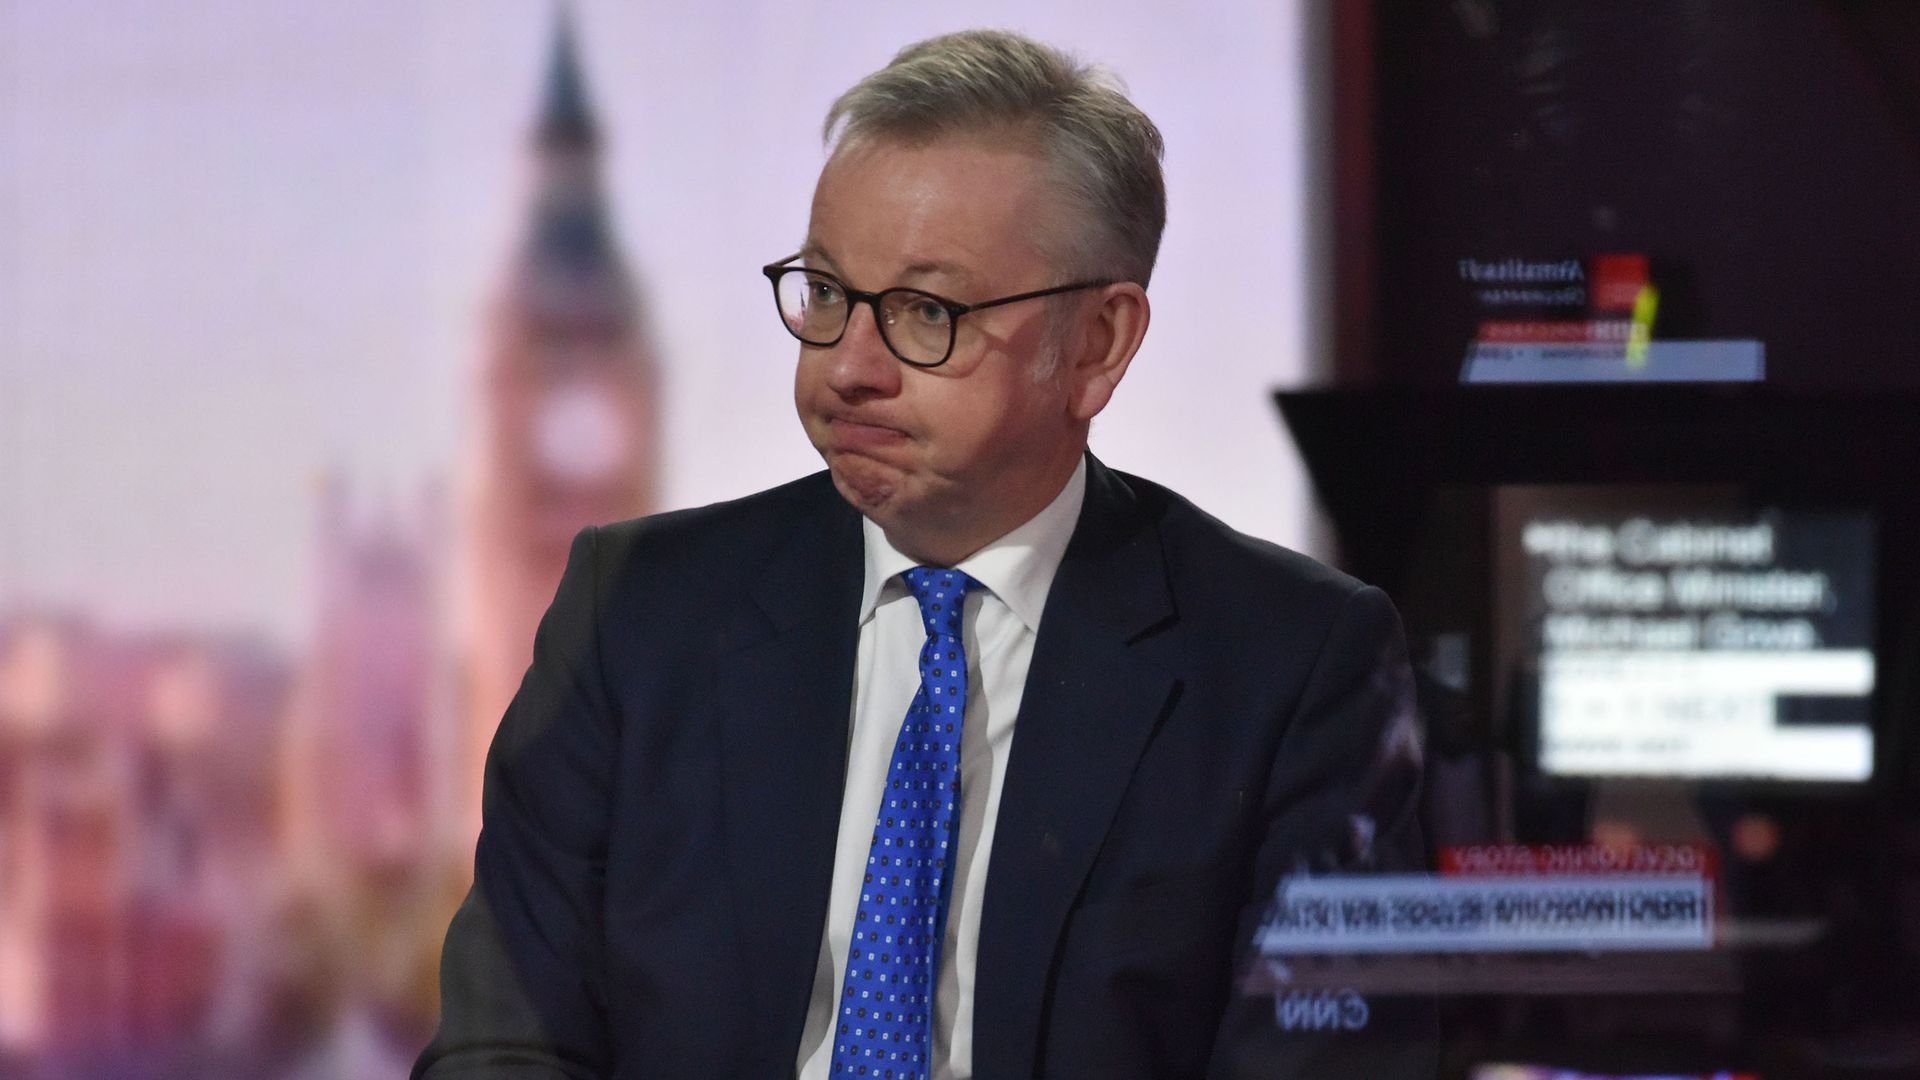 Cabinet Office minister Michael Gove appearing on the BBC1 current affairs programme, The Andrew Marr Show. - Credit: PA